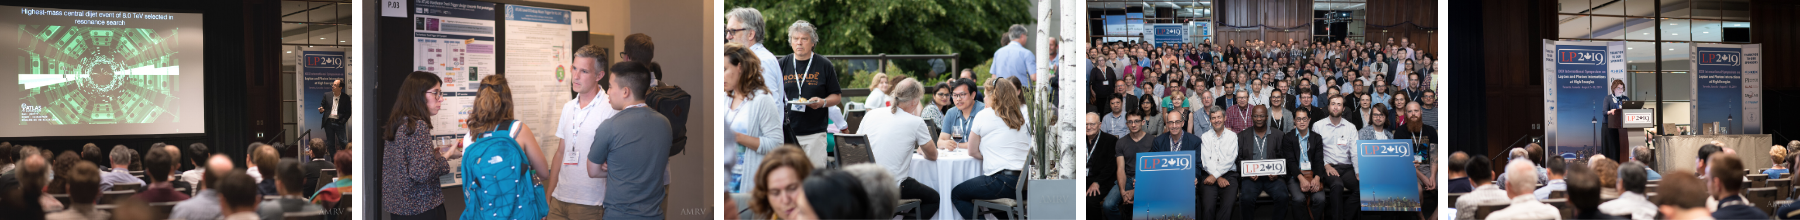 Venue West Conference Services - Past Events - Lepton Photon 2019